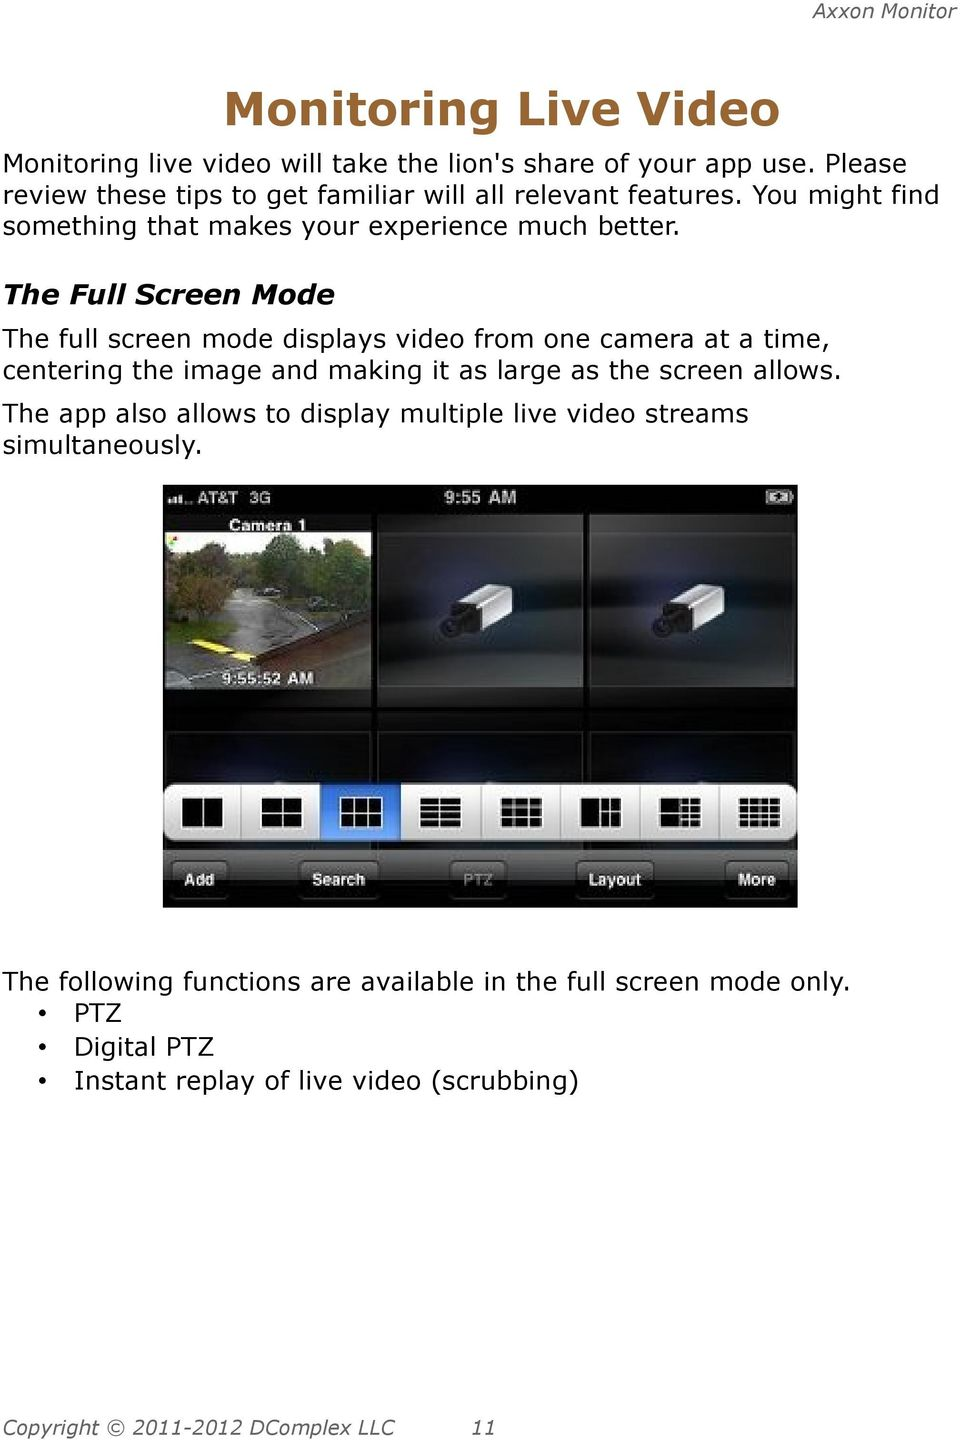 The Full Screen Mode The full screen mode displays video from one camera at a time, centering the image and making it as large as the screen allows.